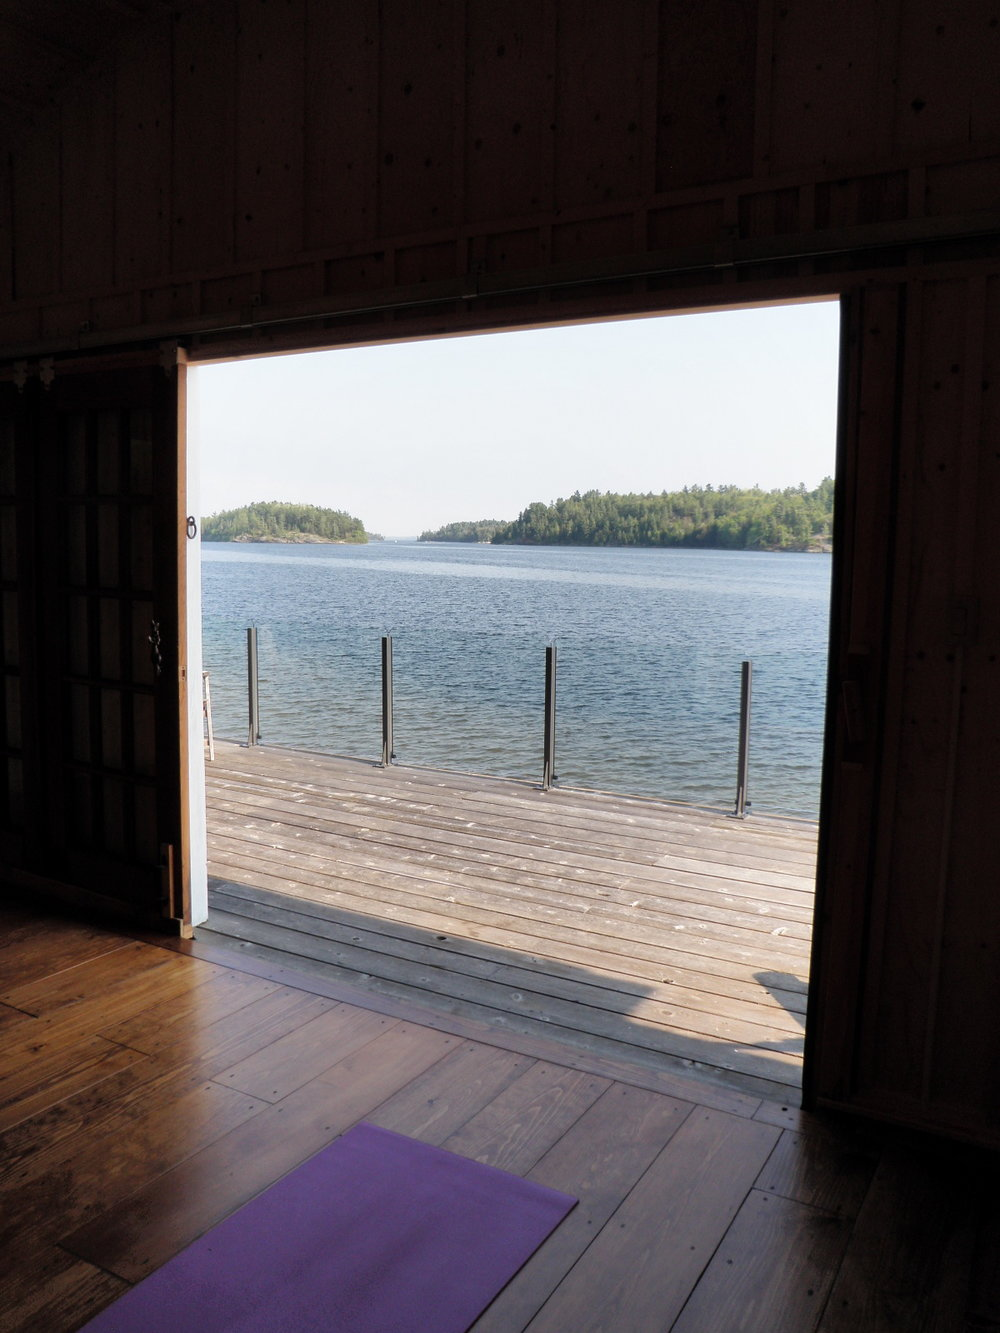 The Boat House - View onto the Bay